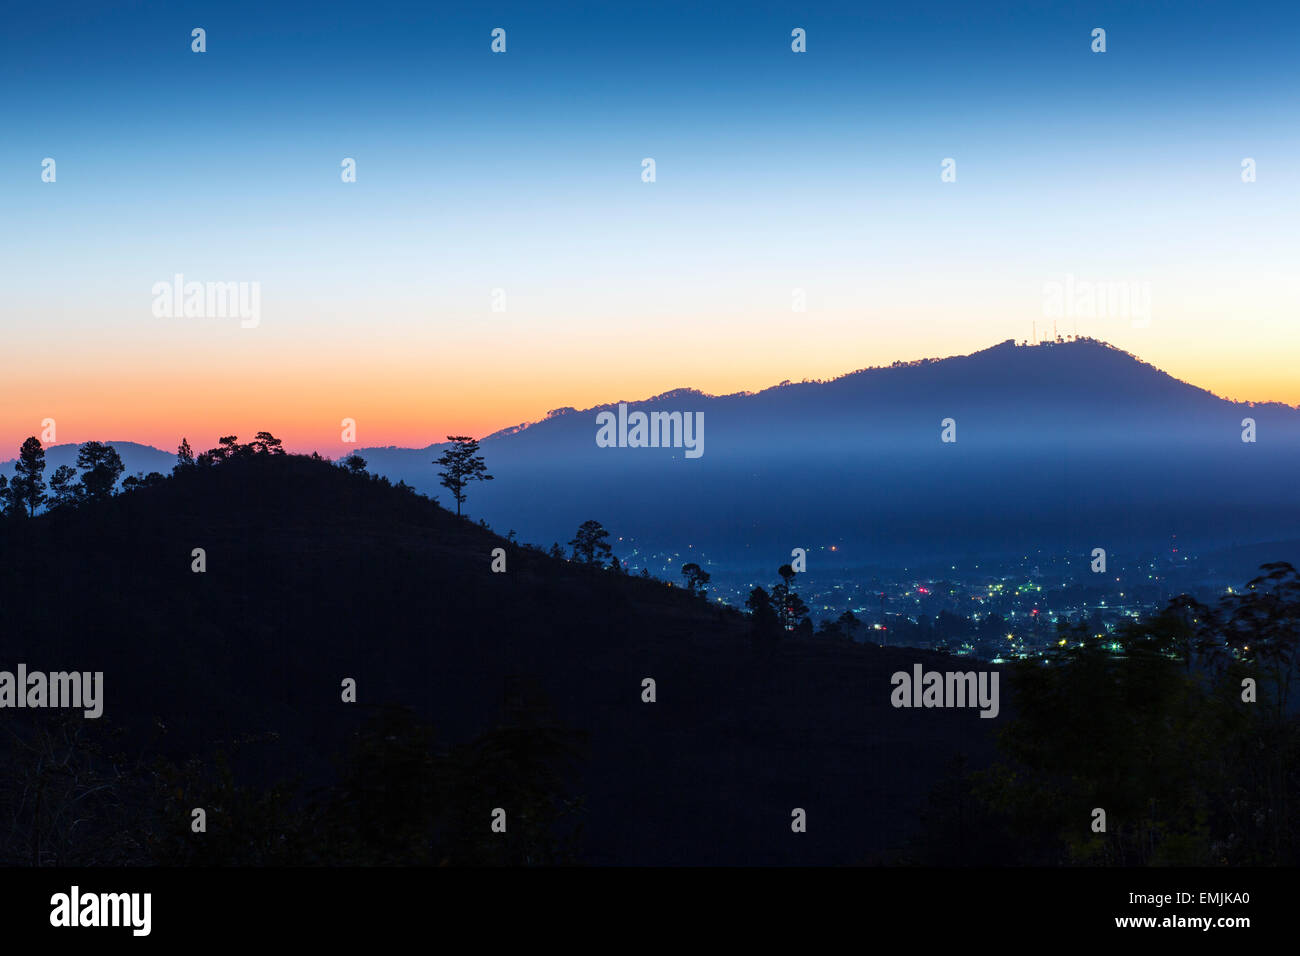 Guatemala,Jalapa,dawn, mist in valley over the town of Jalapa - Stock Image